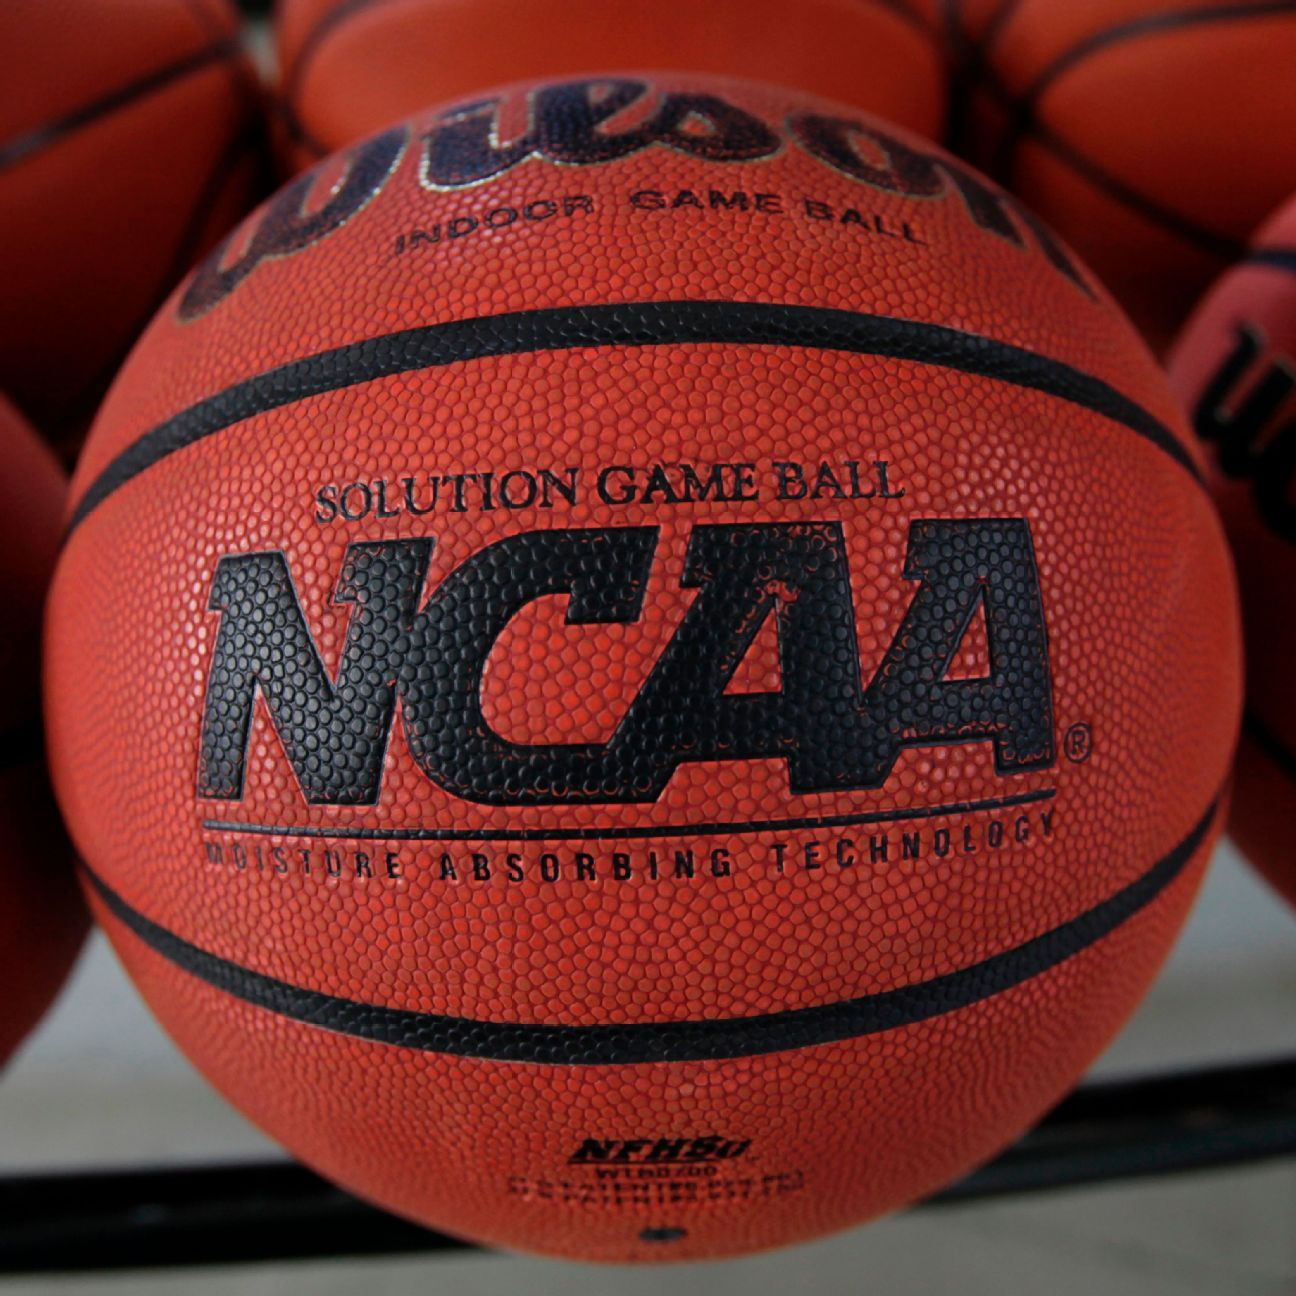 NCAA's new proposed rules blindsides NBA, USA Basketball officials